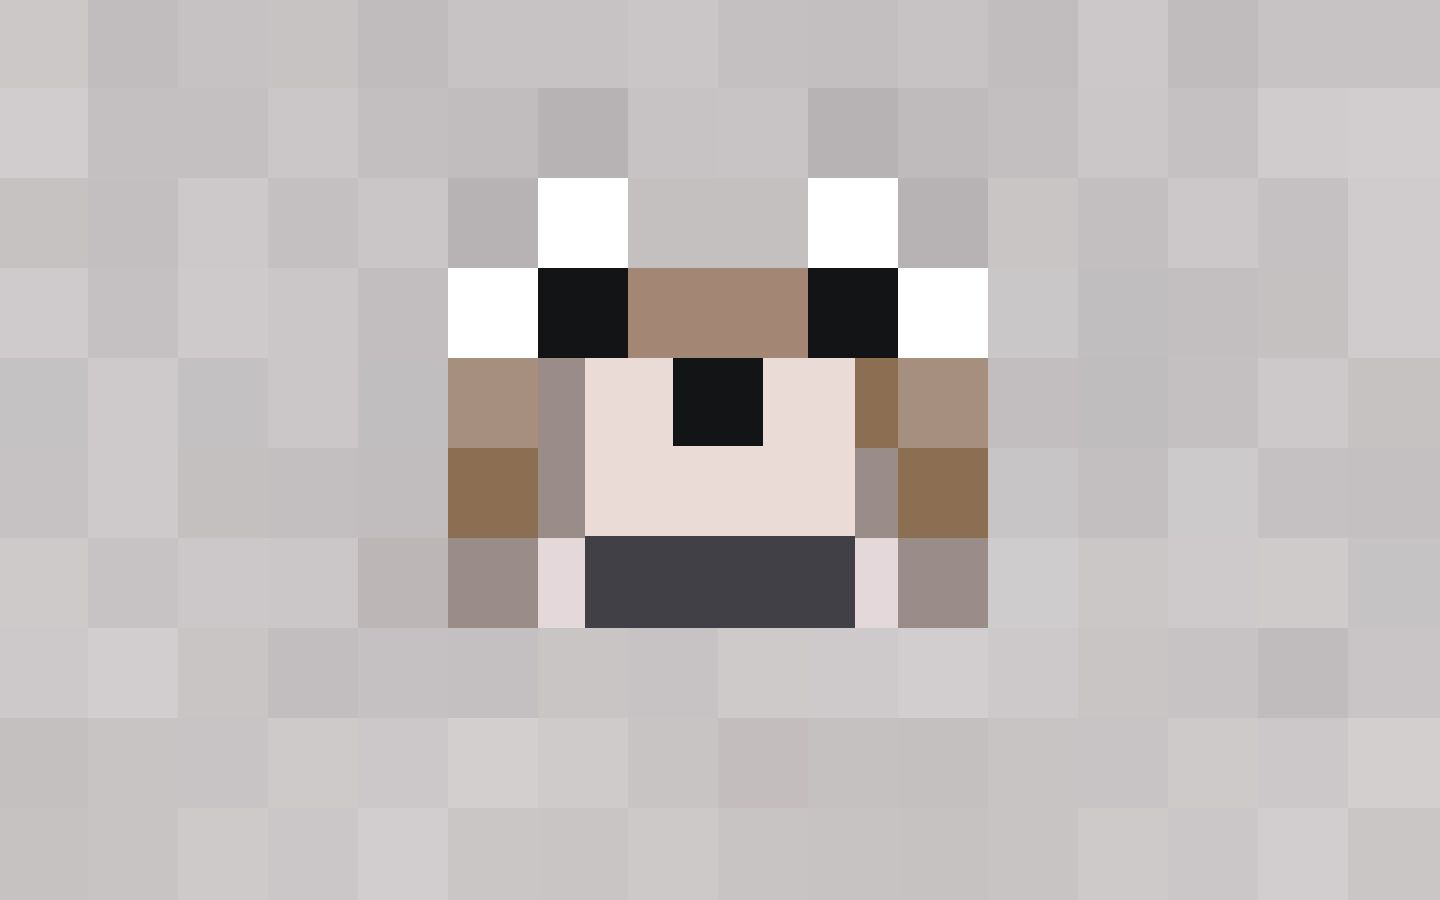 Cute Minecraft Dog That Can Be Used For Tags Or Invitations